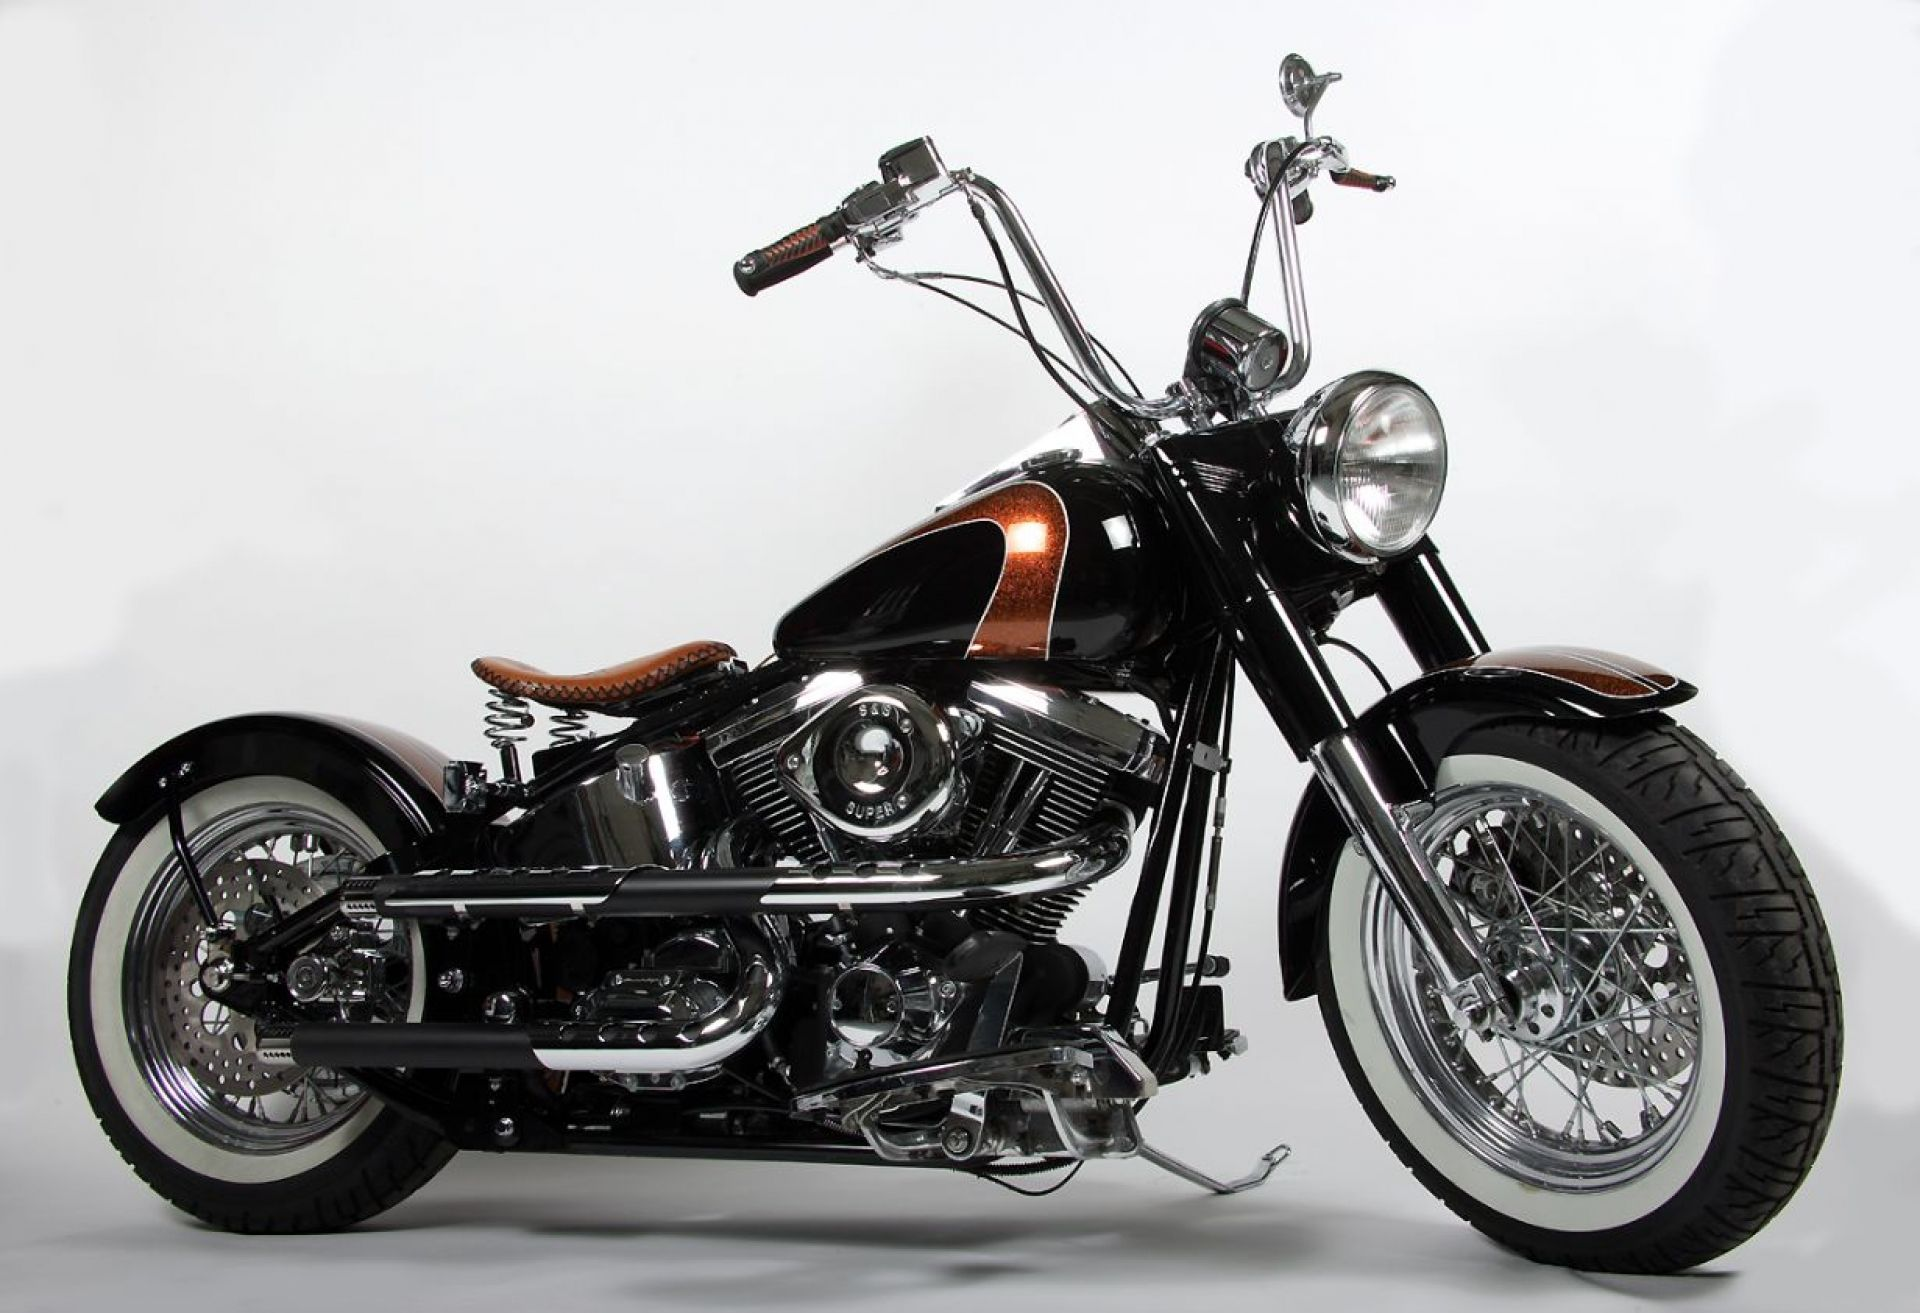 rollingthunder bike chopper harley davidson motorcycle. Black Bedroom Furniture Sets. Home Design Ideas